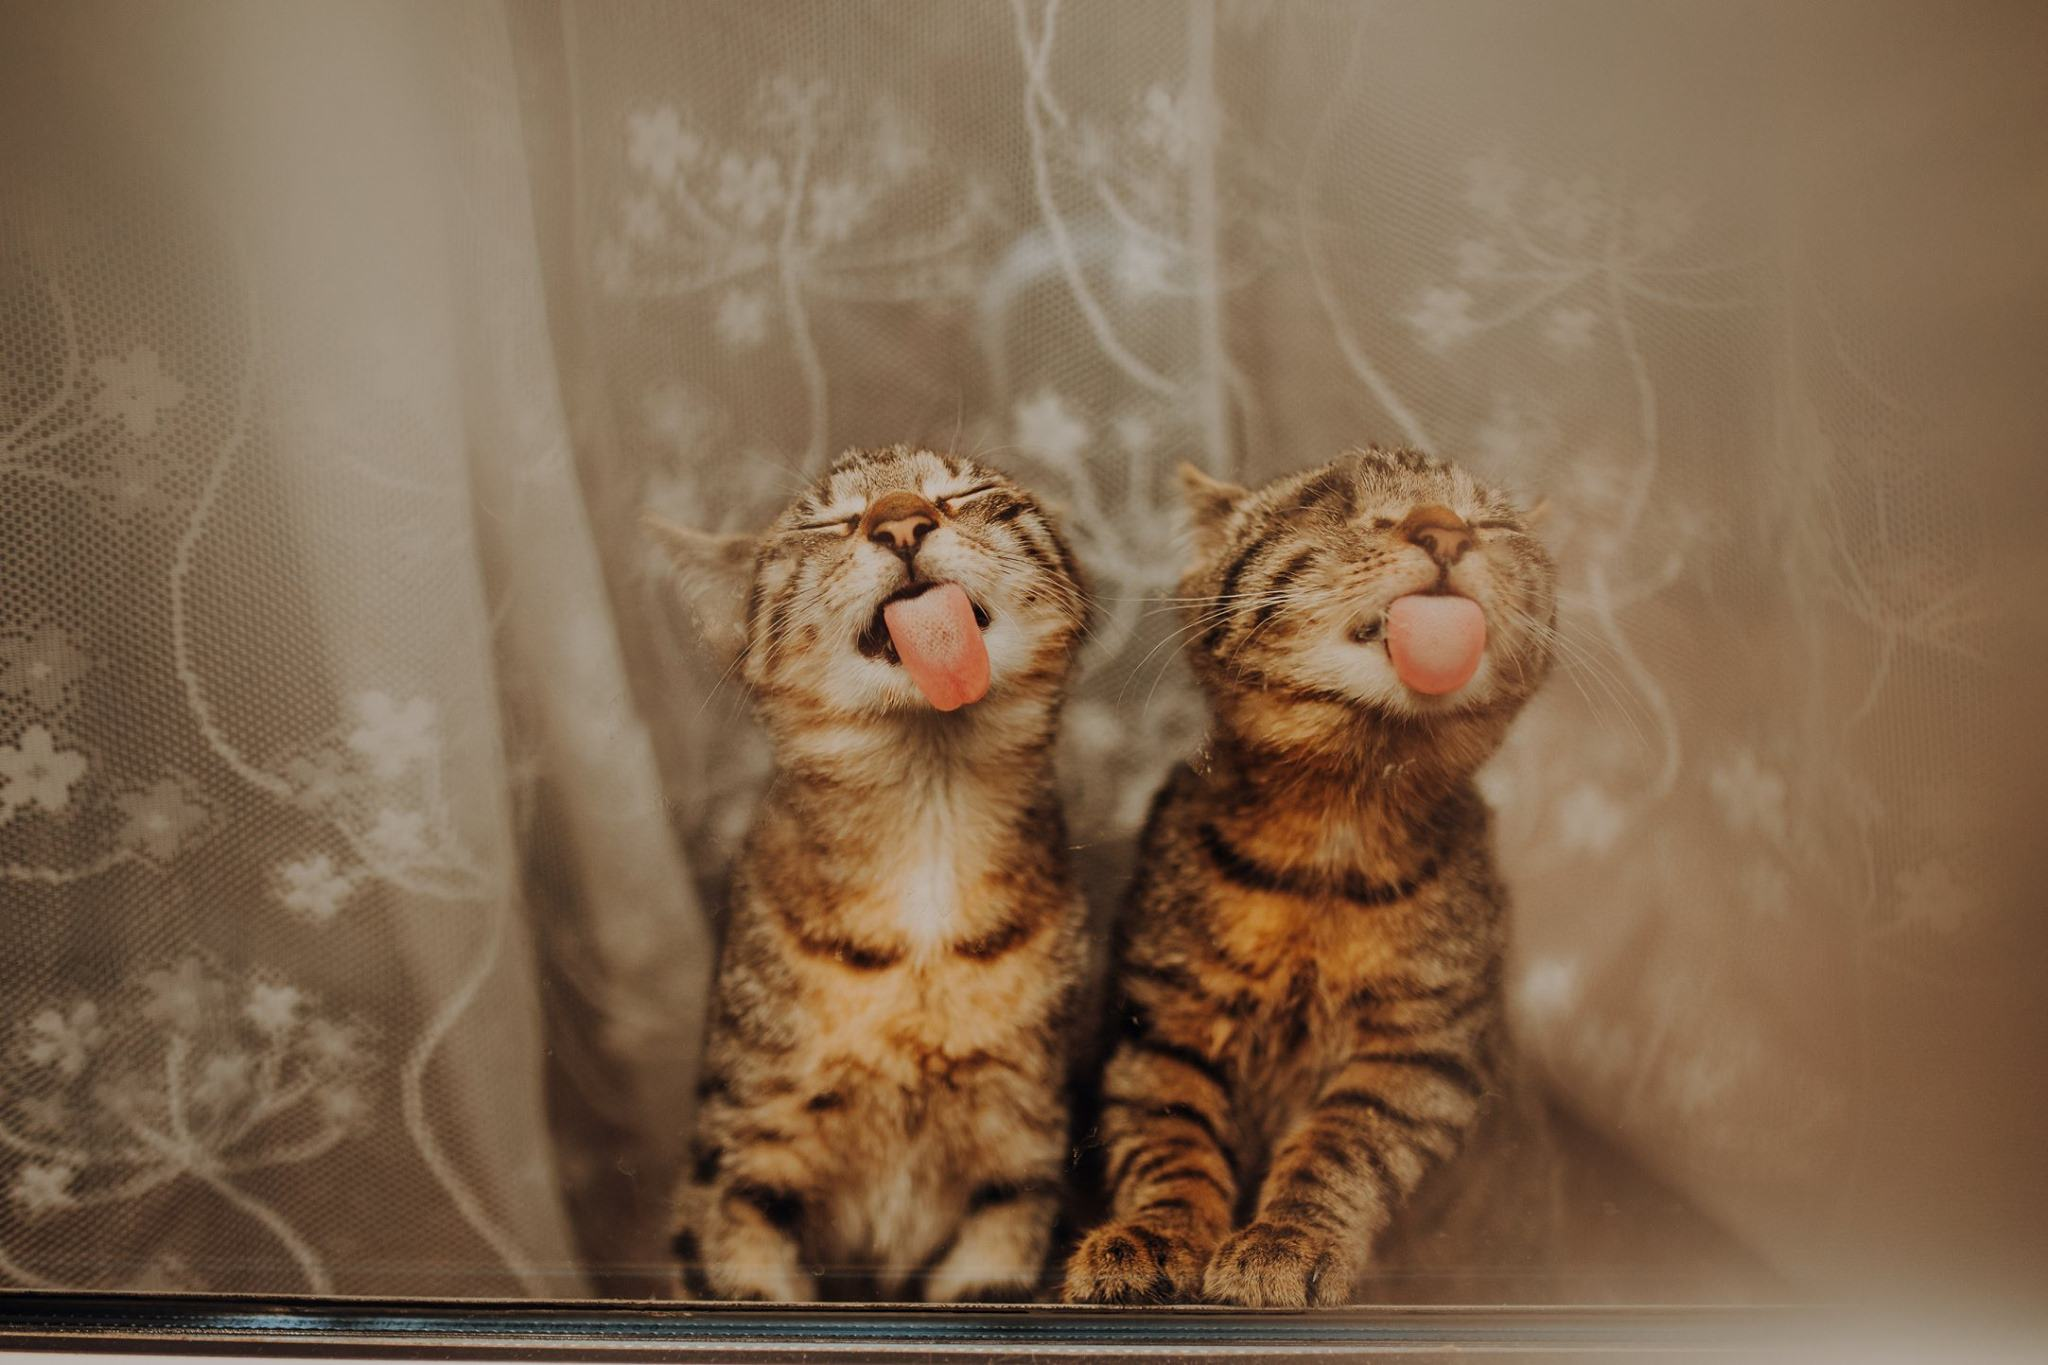 two kittens are licking the window glass